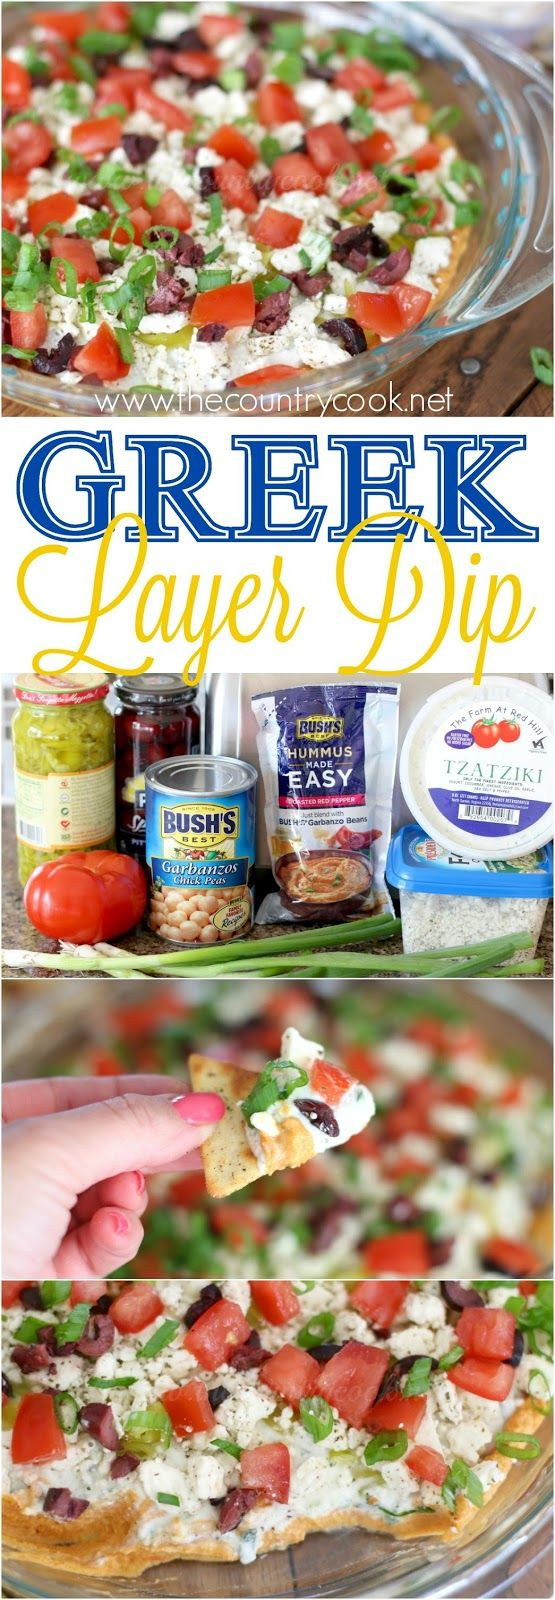 Greek Layer Dip recipe with BUSH'S® Hummus Made Easy, tzatziki, Feta cheese and Kalamata olives from The Country Cook. Ridiculously good! Like a seven layer dip but with Greek inspiration! #HummusMadeEasy #ad